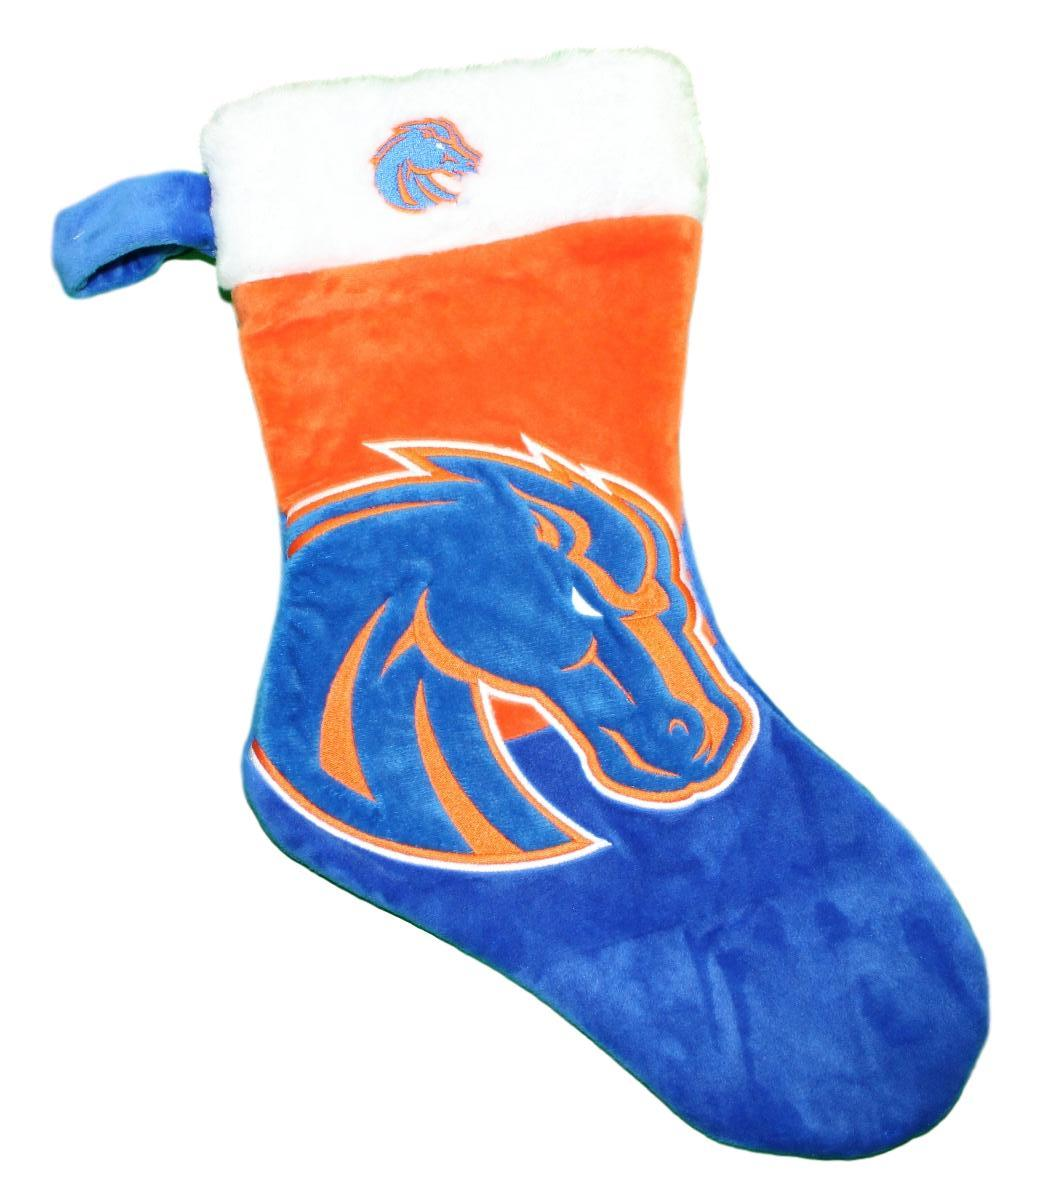 Boise State Broncos 2018 NCAA Basic Logo Plush Christmas Stocking